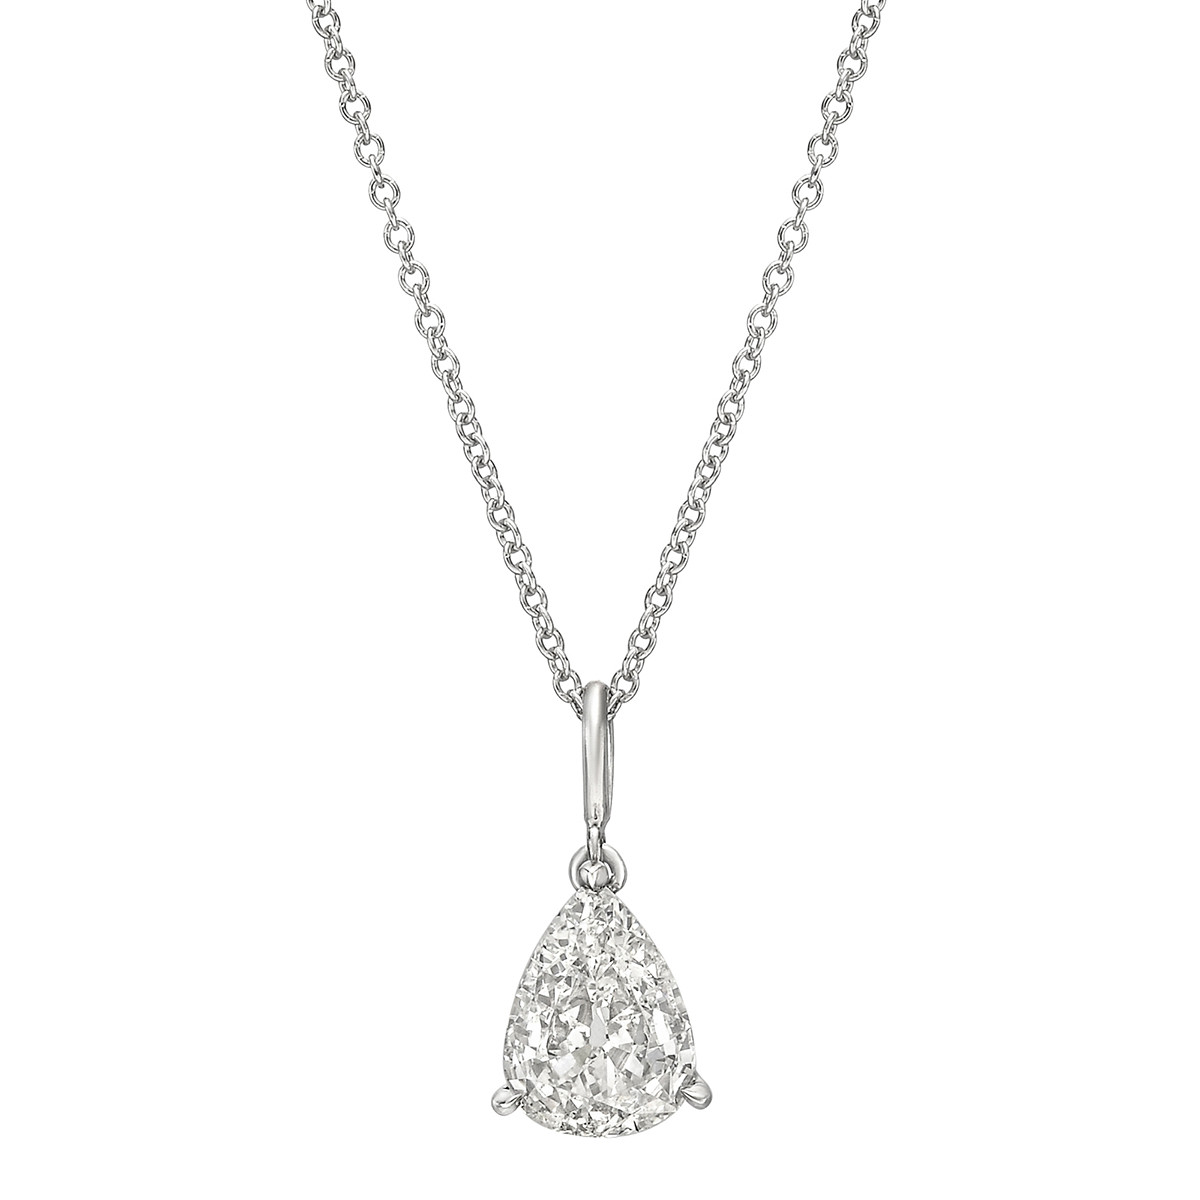 1.15 Carat Pear Brilliant Diamond Solitaire Pendant